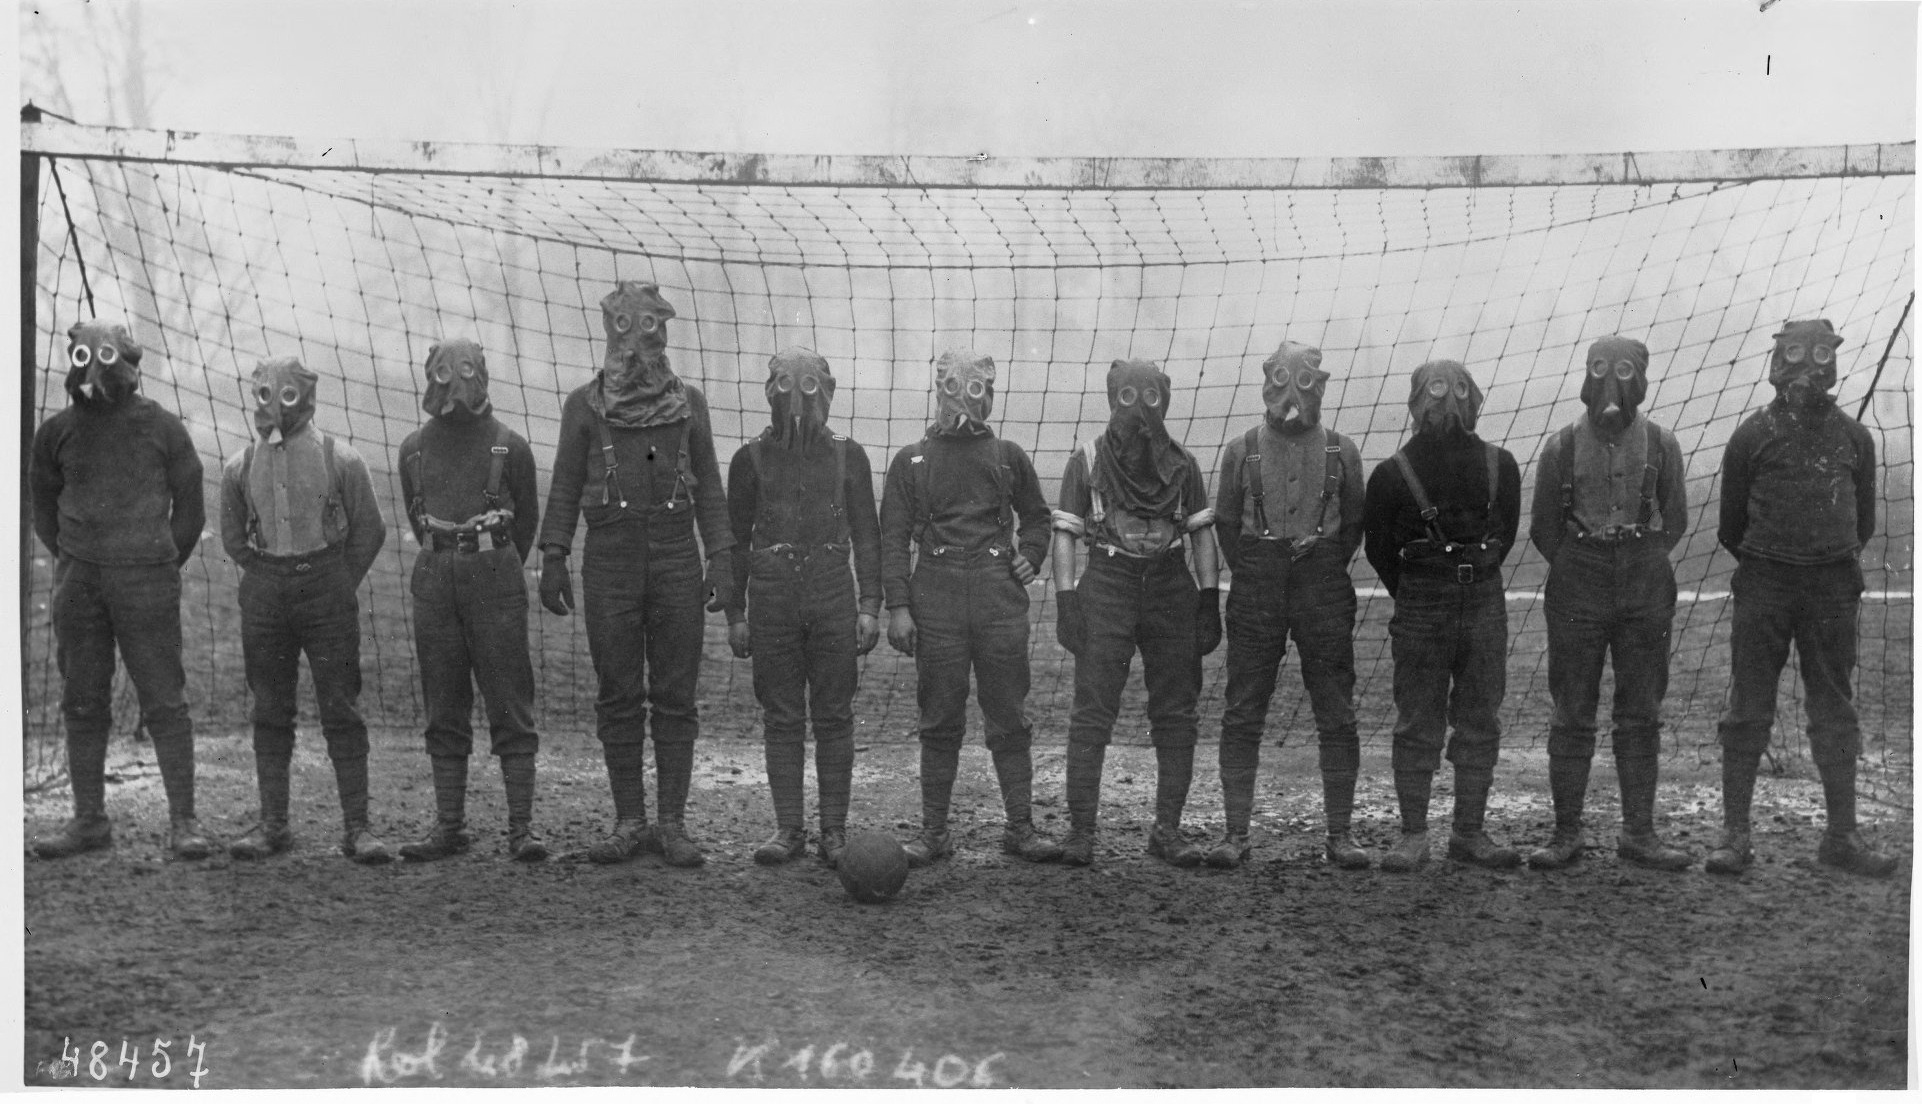 Soccer team of British soldiers with gas masks, World War I, somewhere in Northern France, 1916.